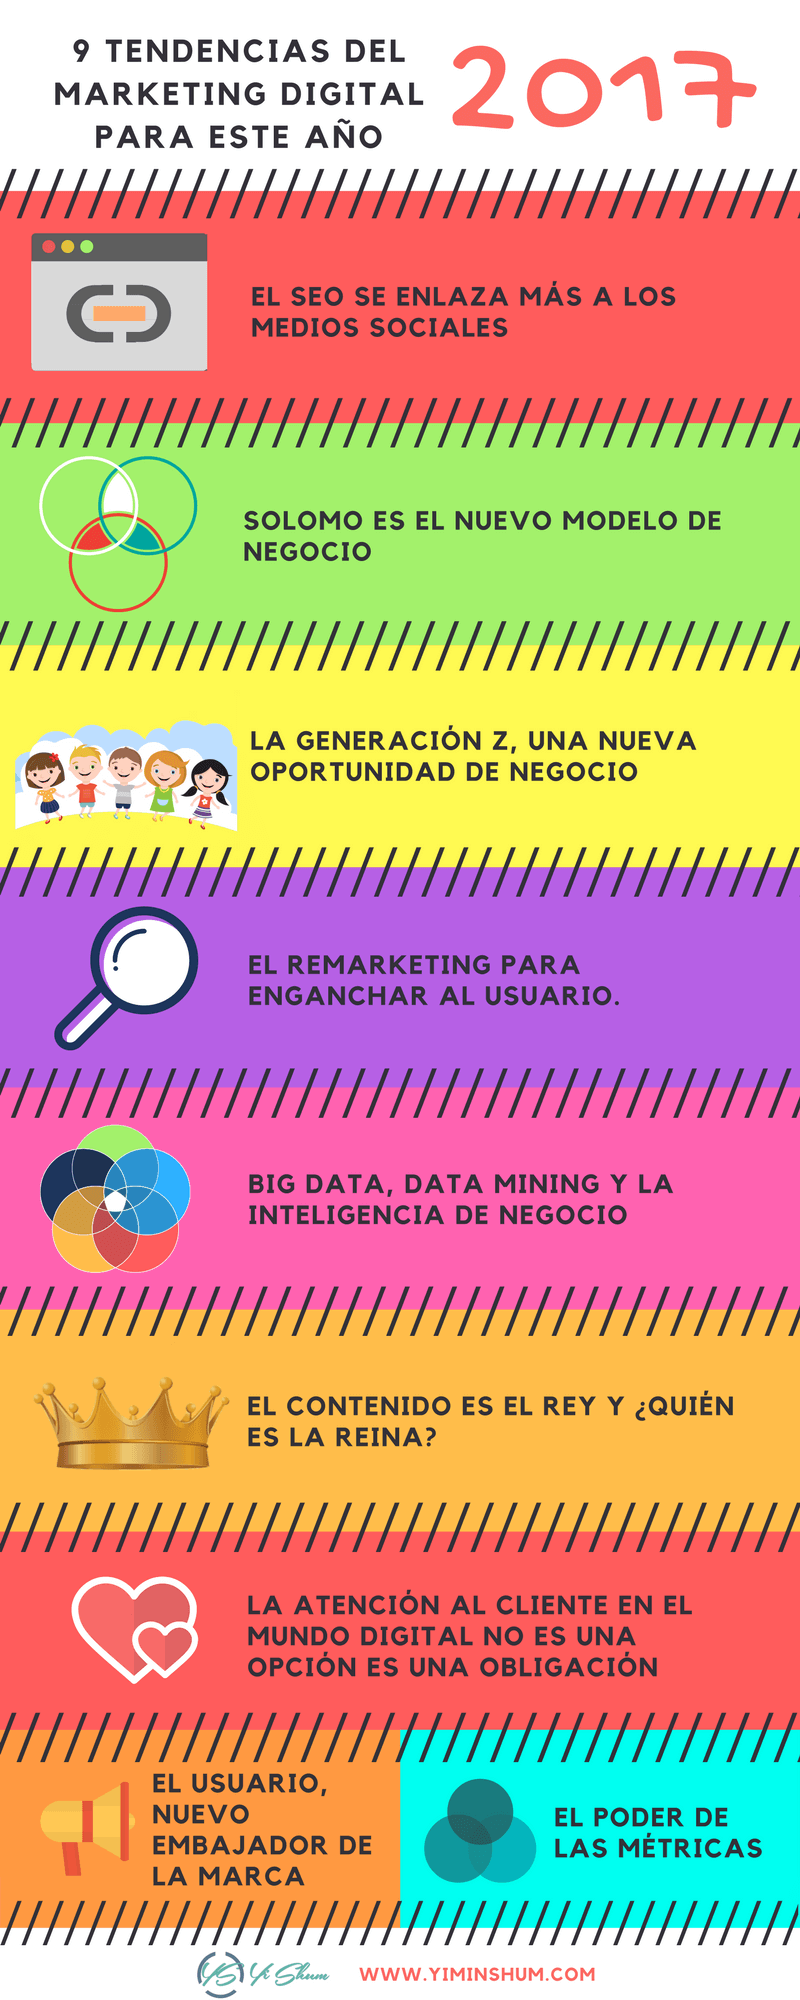 tendencias del marketing digital 2017 infografia completa